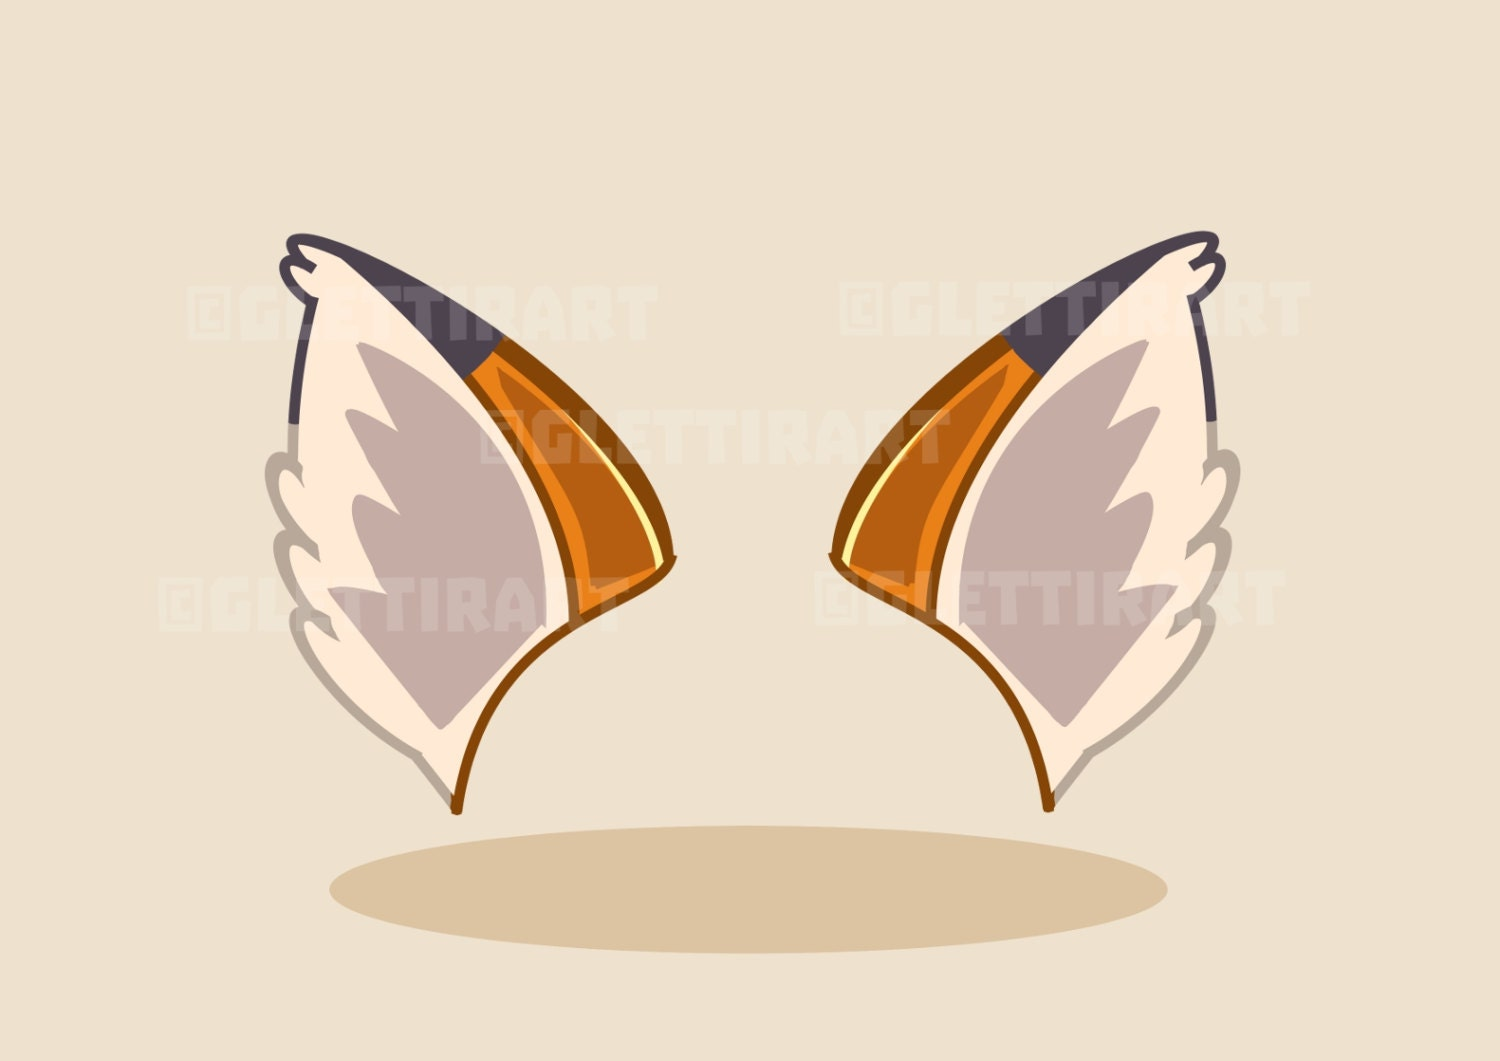 fox ears clipart clipart for personal and commercial use etsy